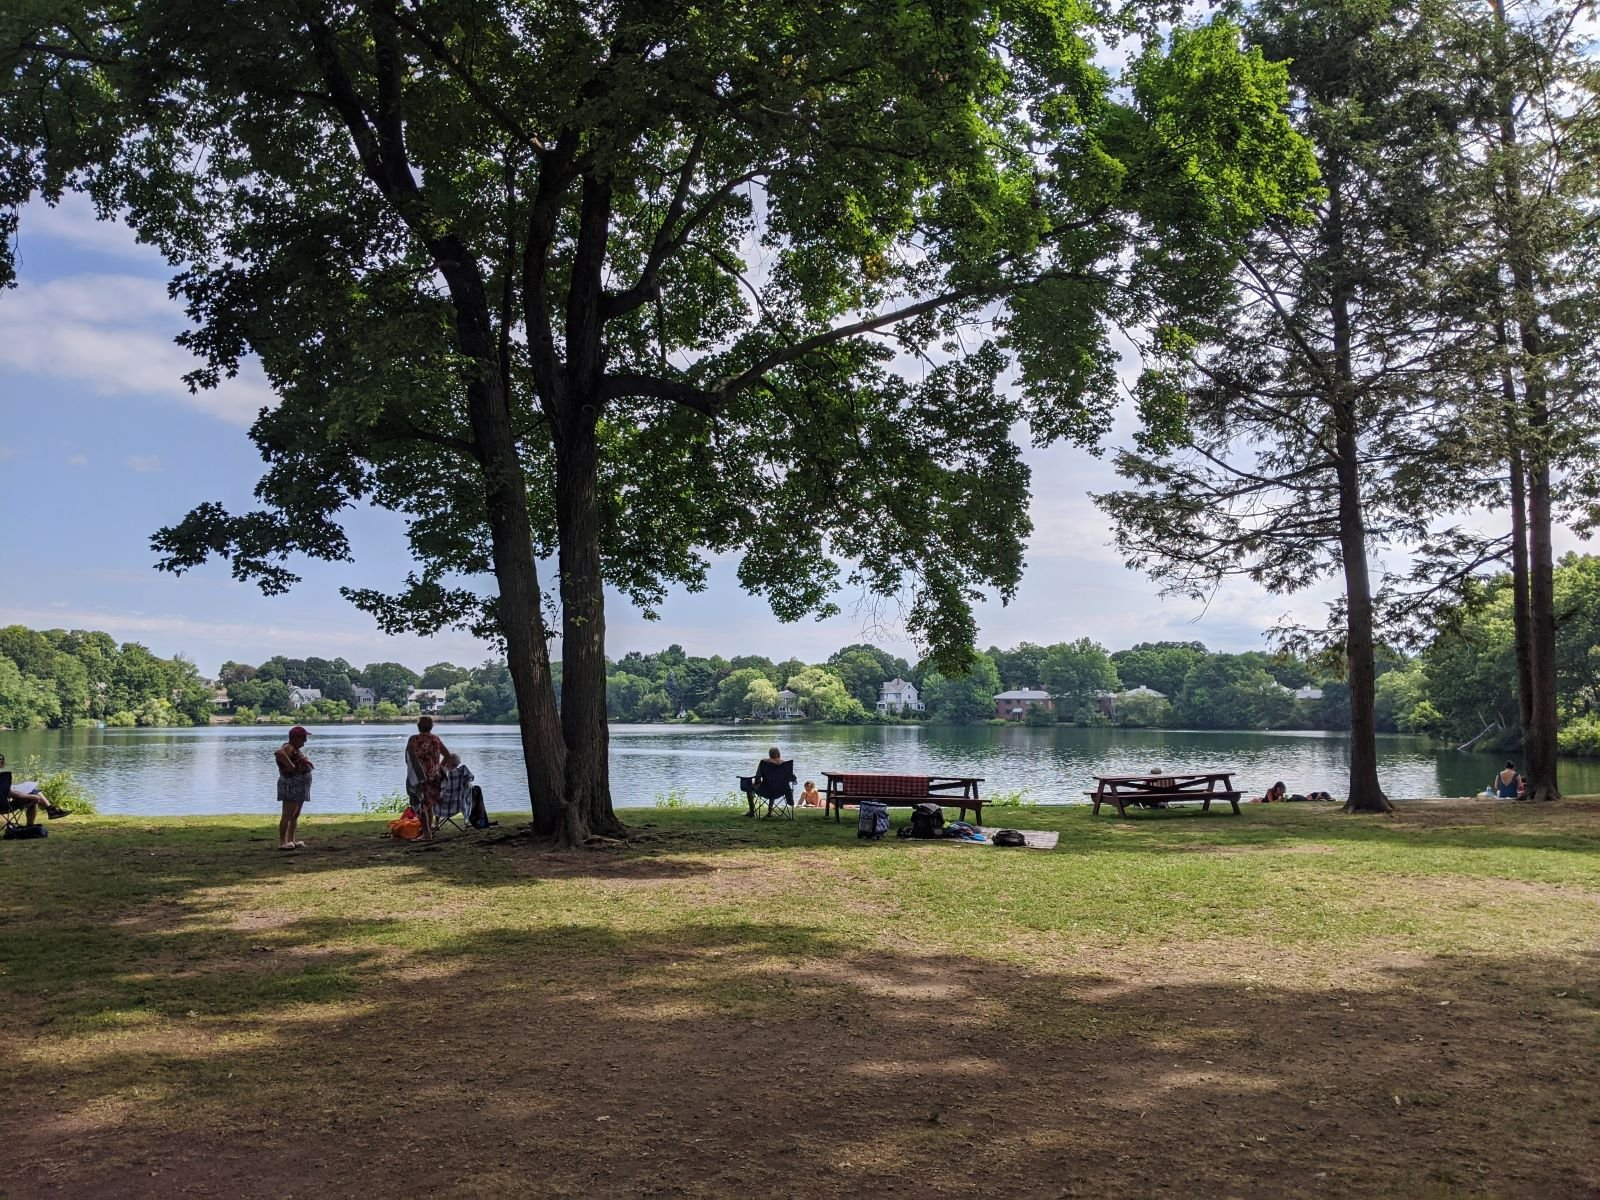 grassy picnic area shaded by trees with Crystal Lake in the background